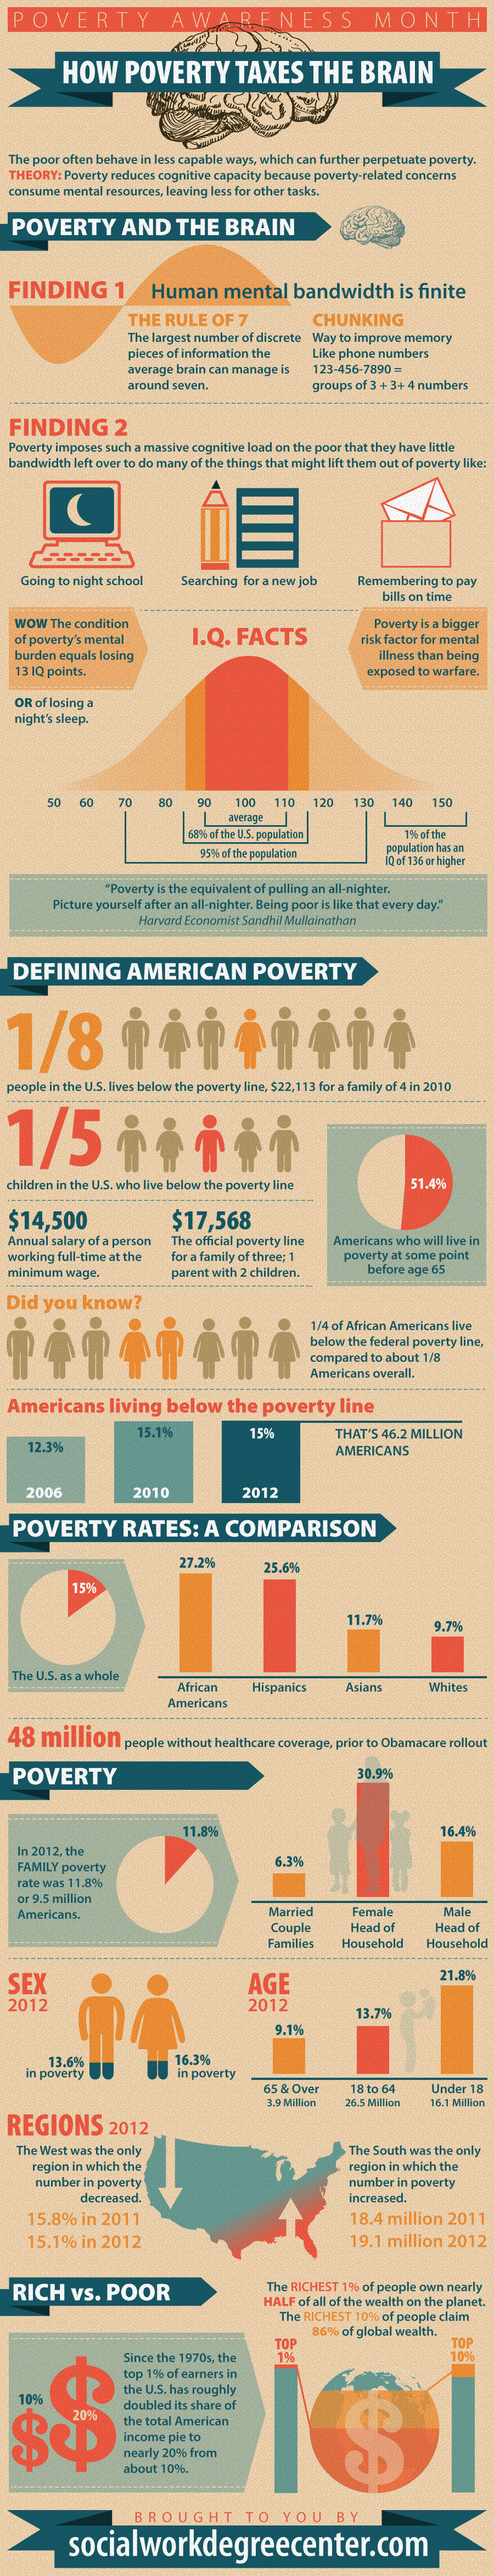 Poverty-on-the-Brain-569bf1a5f89409bff3ea9089053275ec.jpg